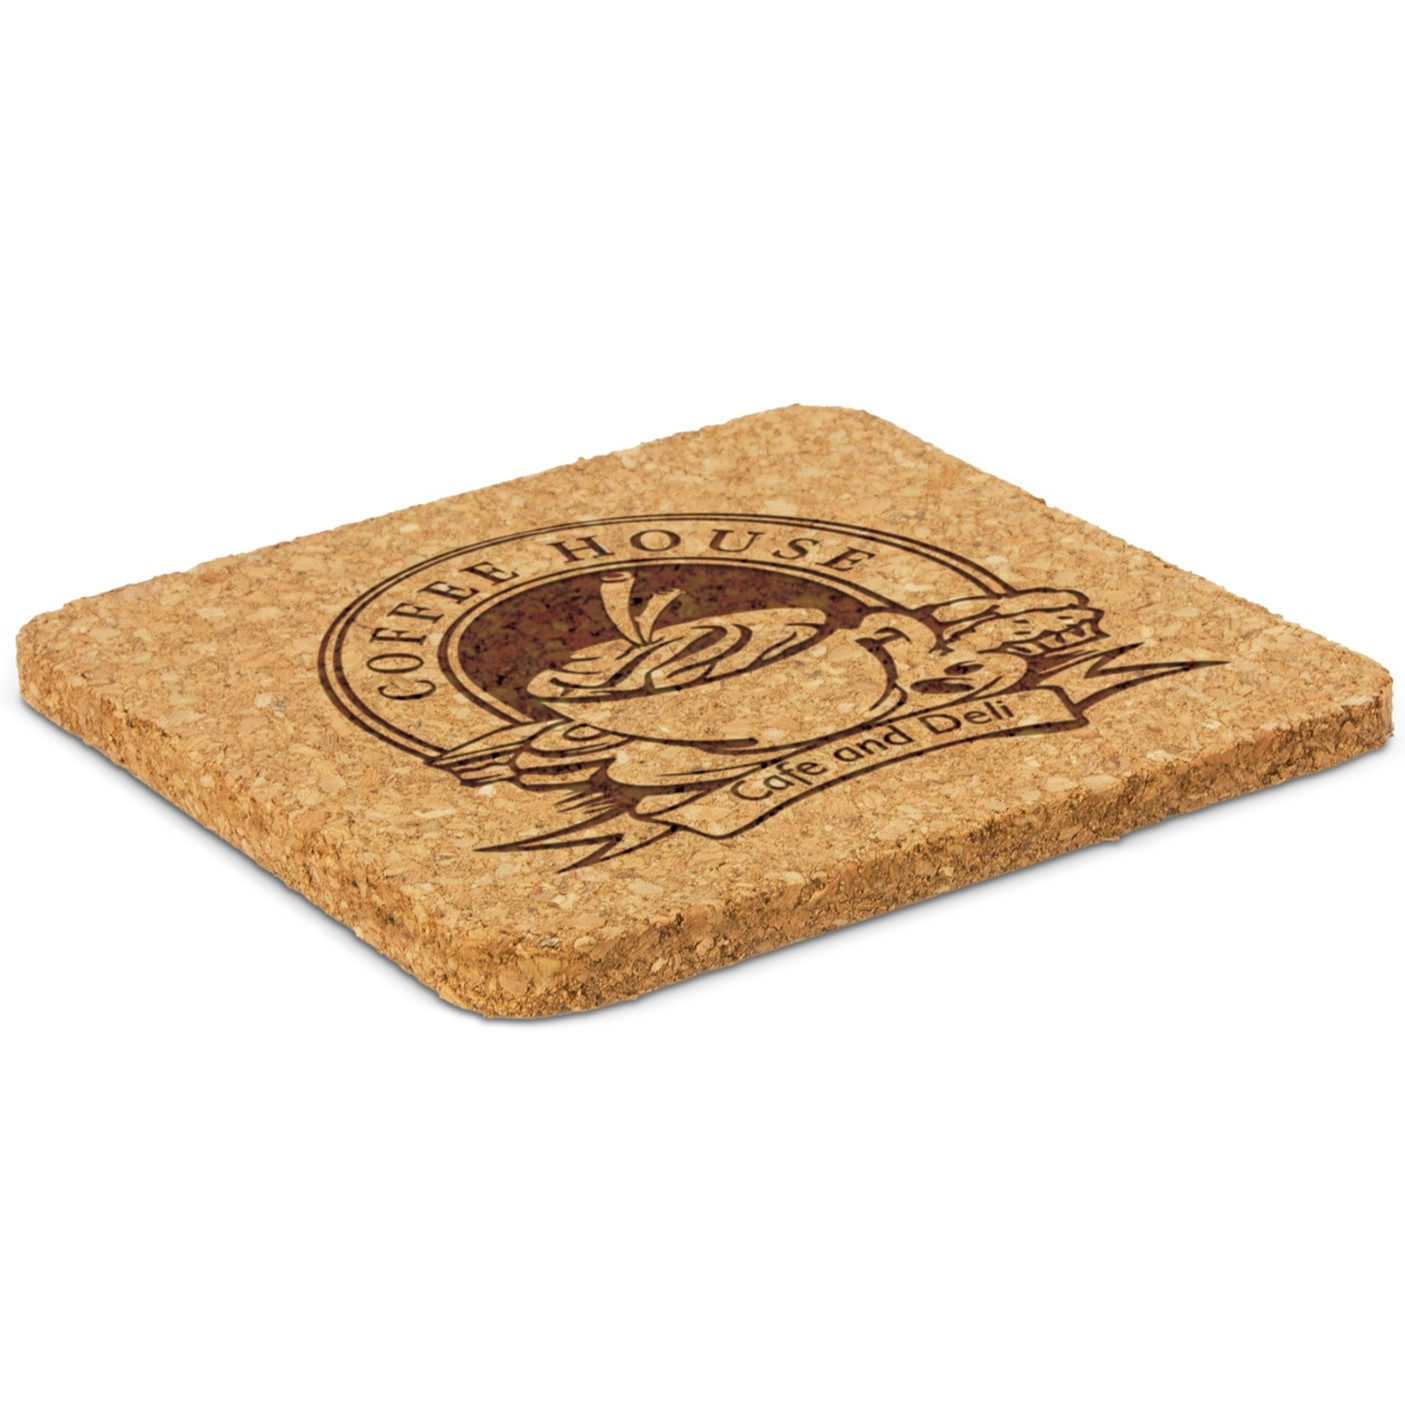 Oakridge Cork Coaster